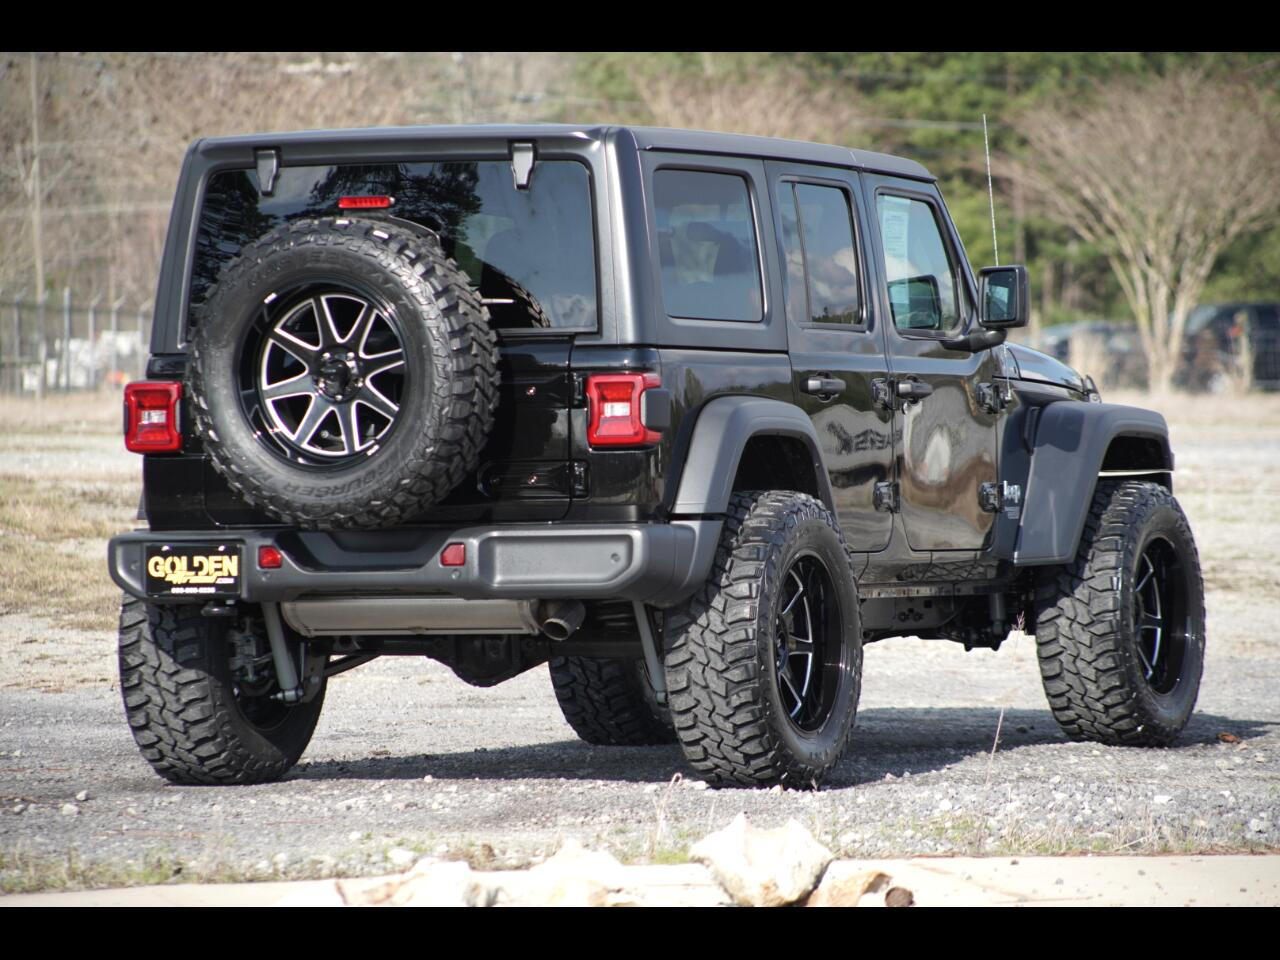 2018 Jeep Wrangler Unlimited Unlimited JL Lifted XD Hardtop Sale Priced!!!